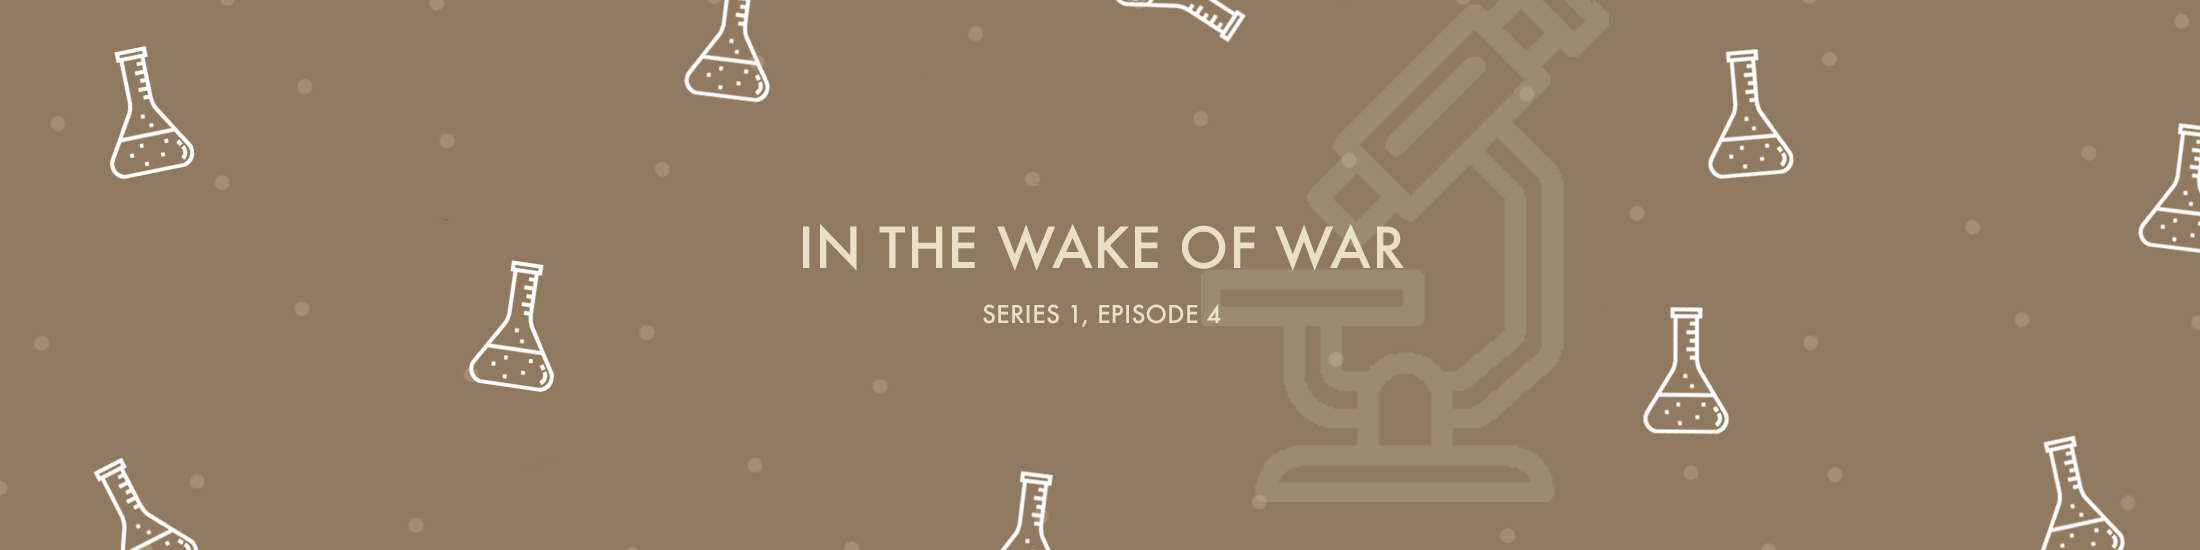 In the Wake of War text with beakers and microscope vector images